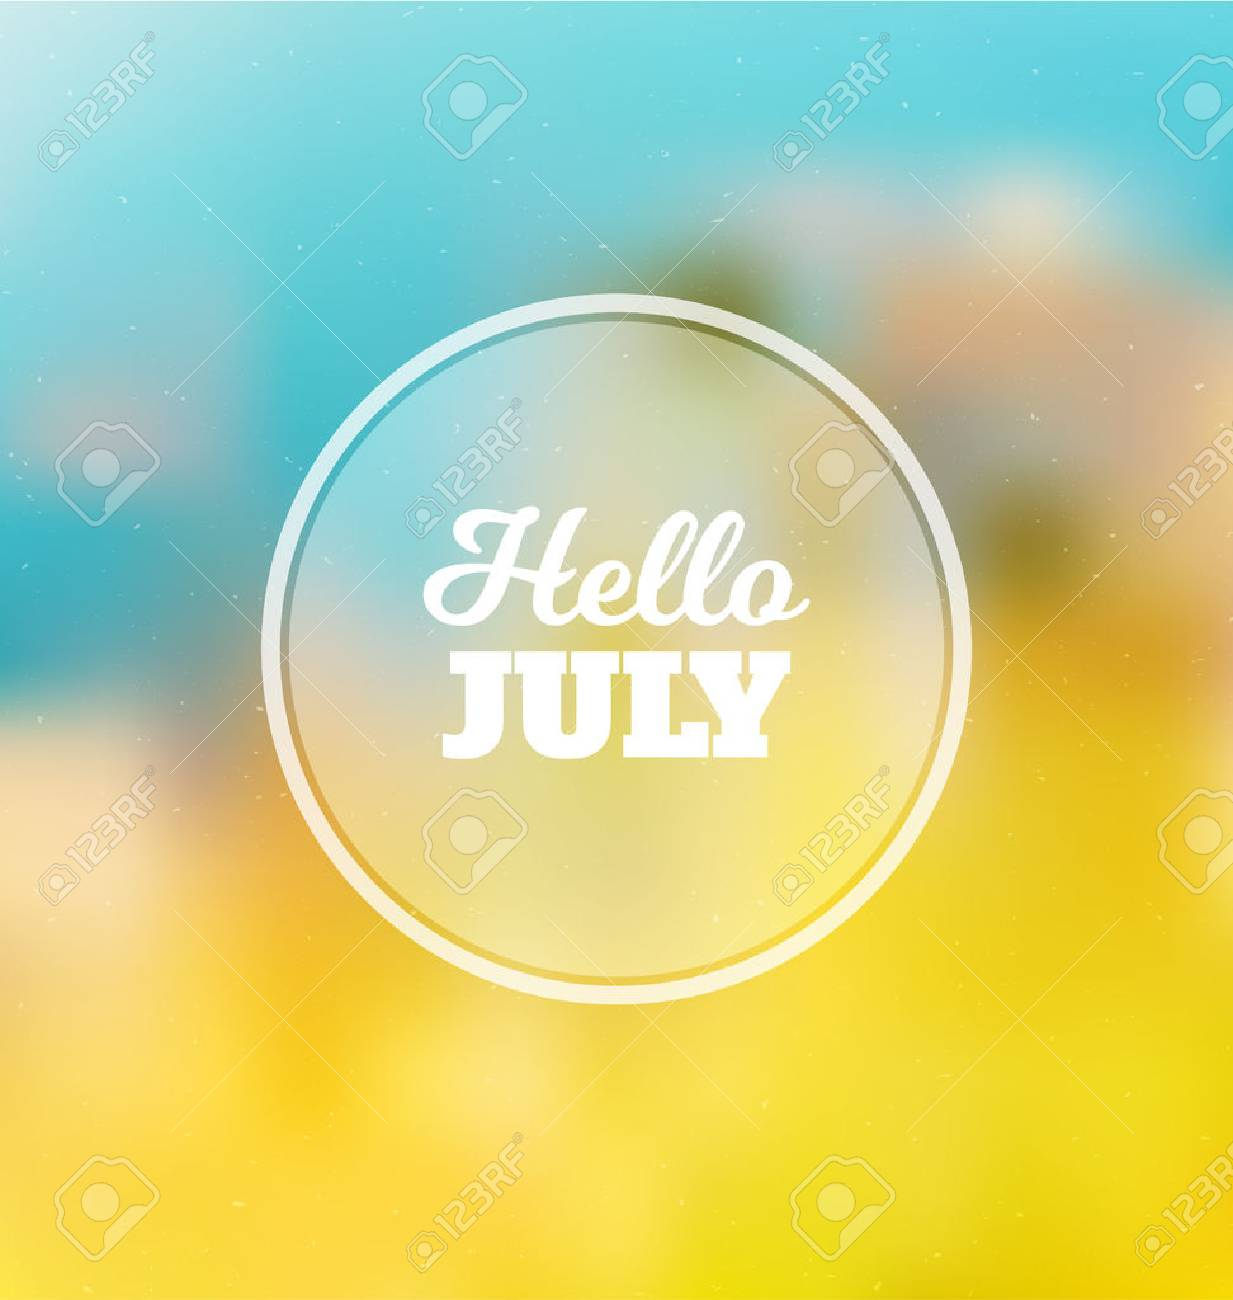 Hello July   Typographic Greeting Card Design Concept   Colorful Blurred  Background With White Text Stock